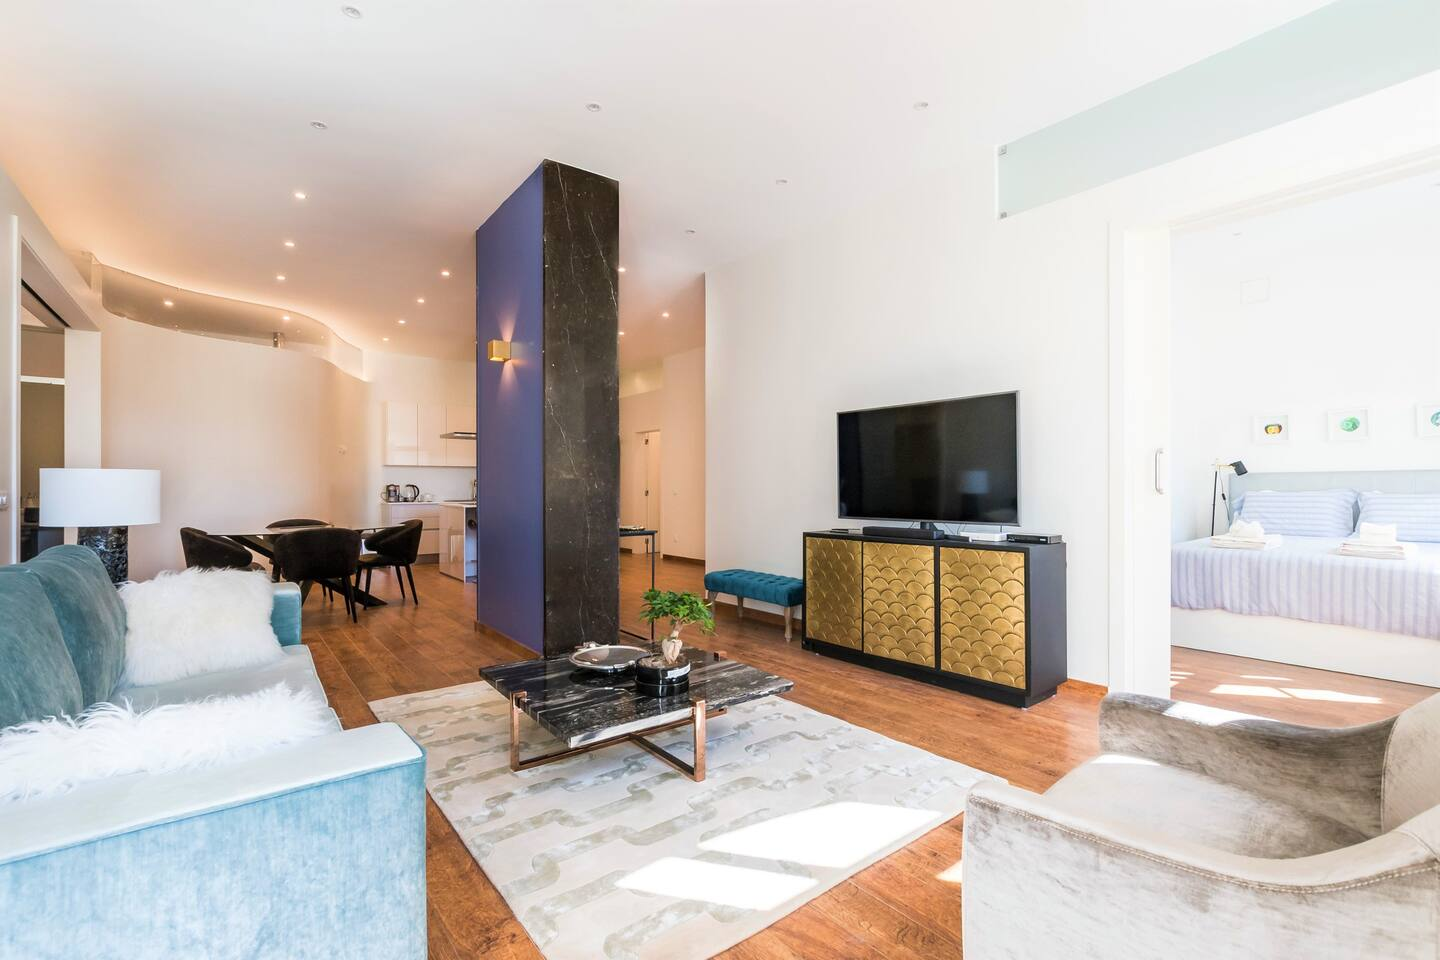 This unique luxury loft is centrally located, just 1 block to the main pedestrian Rua Augusta avenue of Baixa Oversized windows fill the open space with plenty of morning & afternoon light. Enjoy the beautiful view of downtown at night.